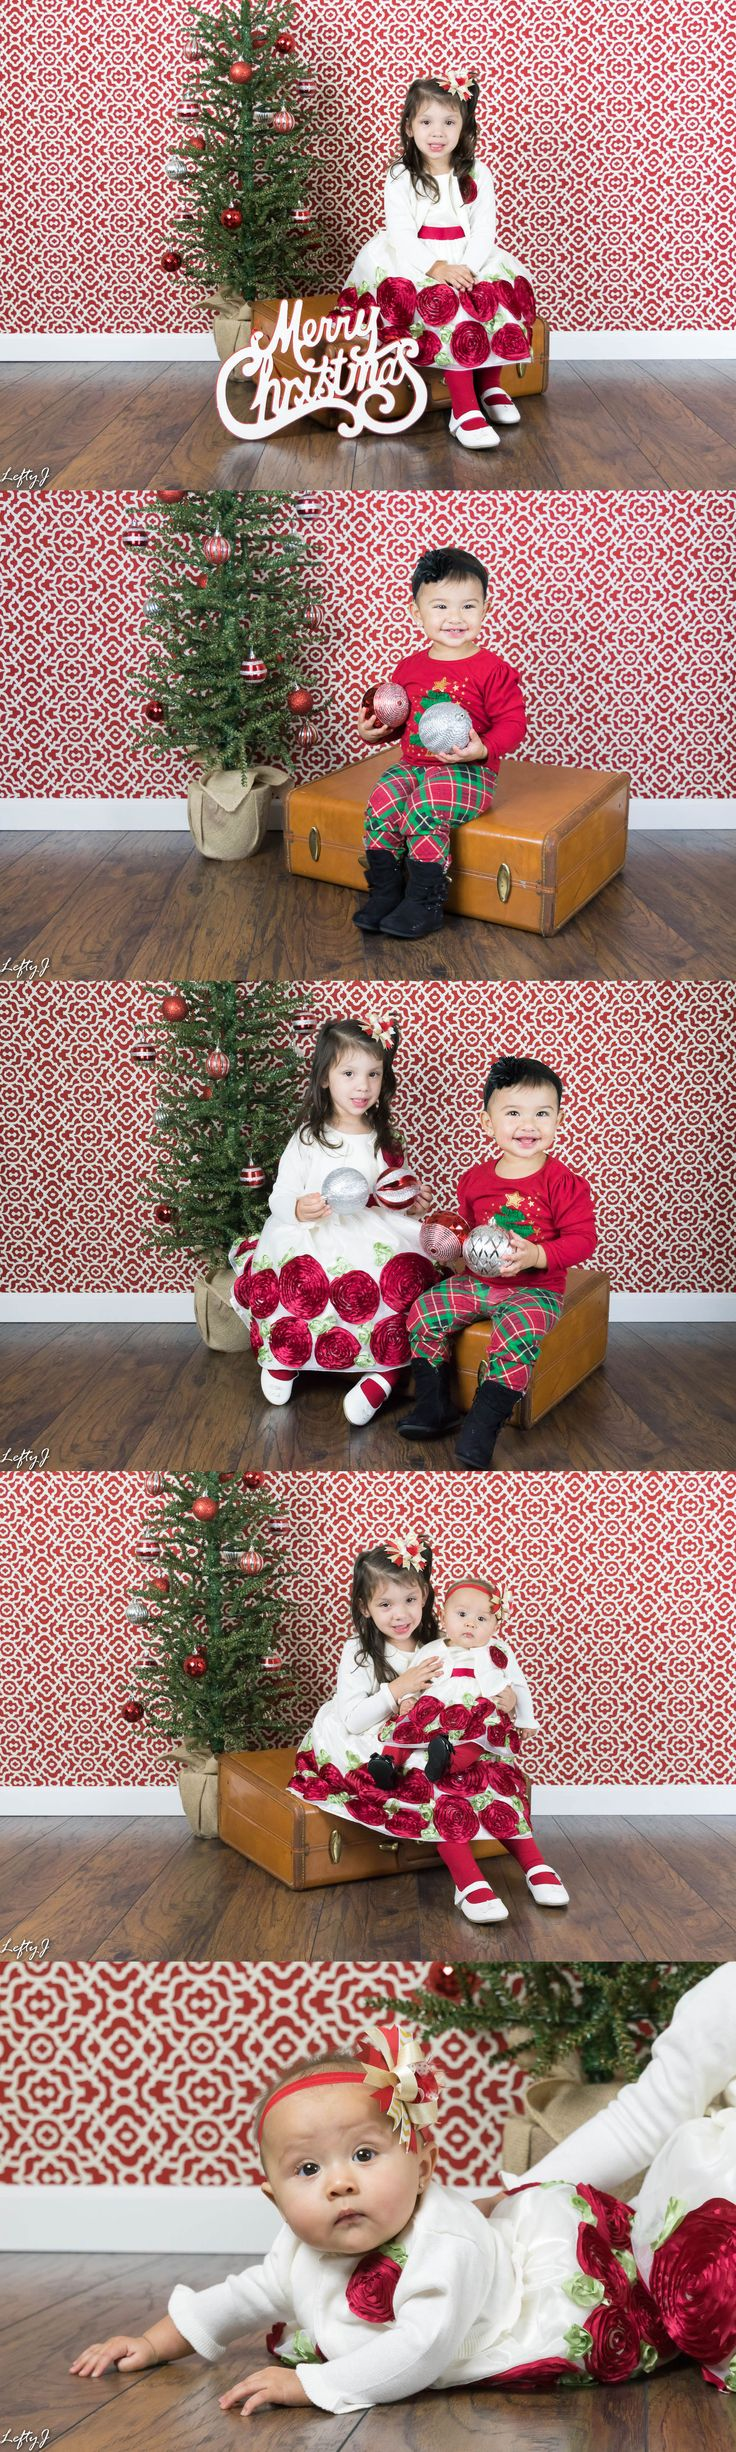 This weekend we got to do a Christmas shoot with our niece Gracelynn, her little sister Jaelynn, and our other niece Alayna. It was so much fun. They loved playing with the Christmas ornaments.  There's still time to book an indoor or outdoor Christmas session with us. http://www.leftyjphotography.com  #corpuschristiphotography #corpuschristiphotographer #kidphotography #babyphotography #christmasphotos #christmasphotography